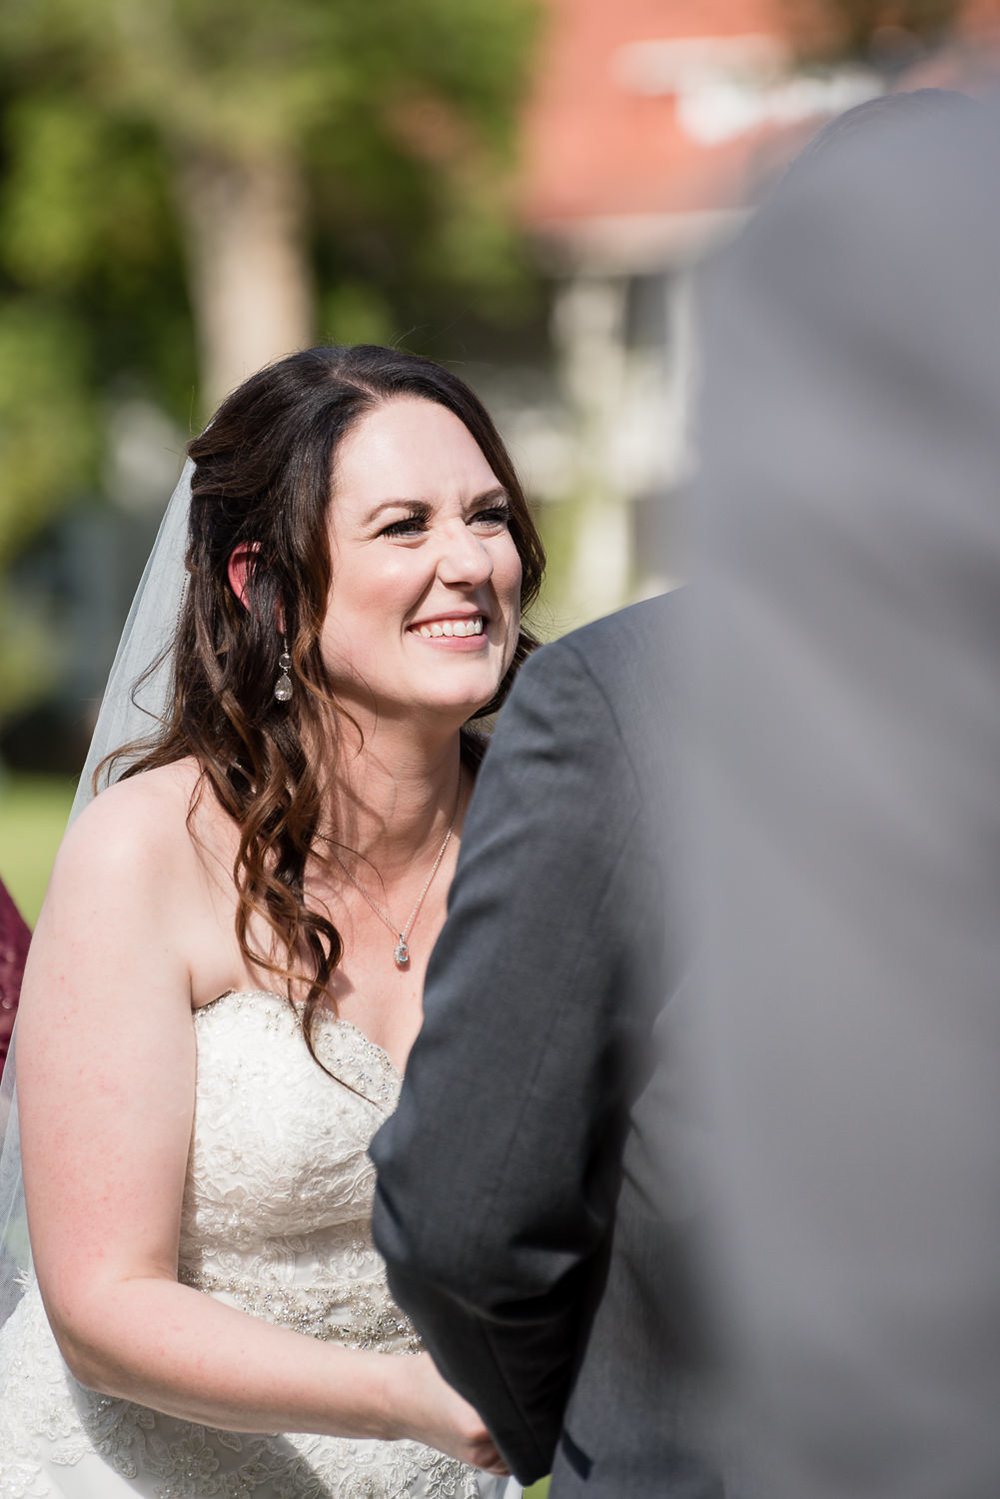 heritage-hall-missoula-montana-bride-laughing-during-ceremony.jpg